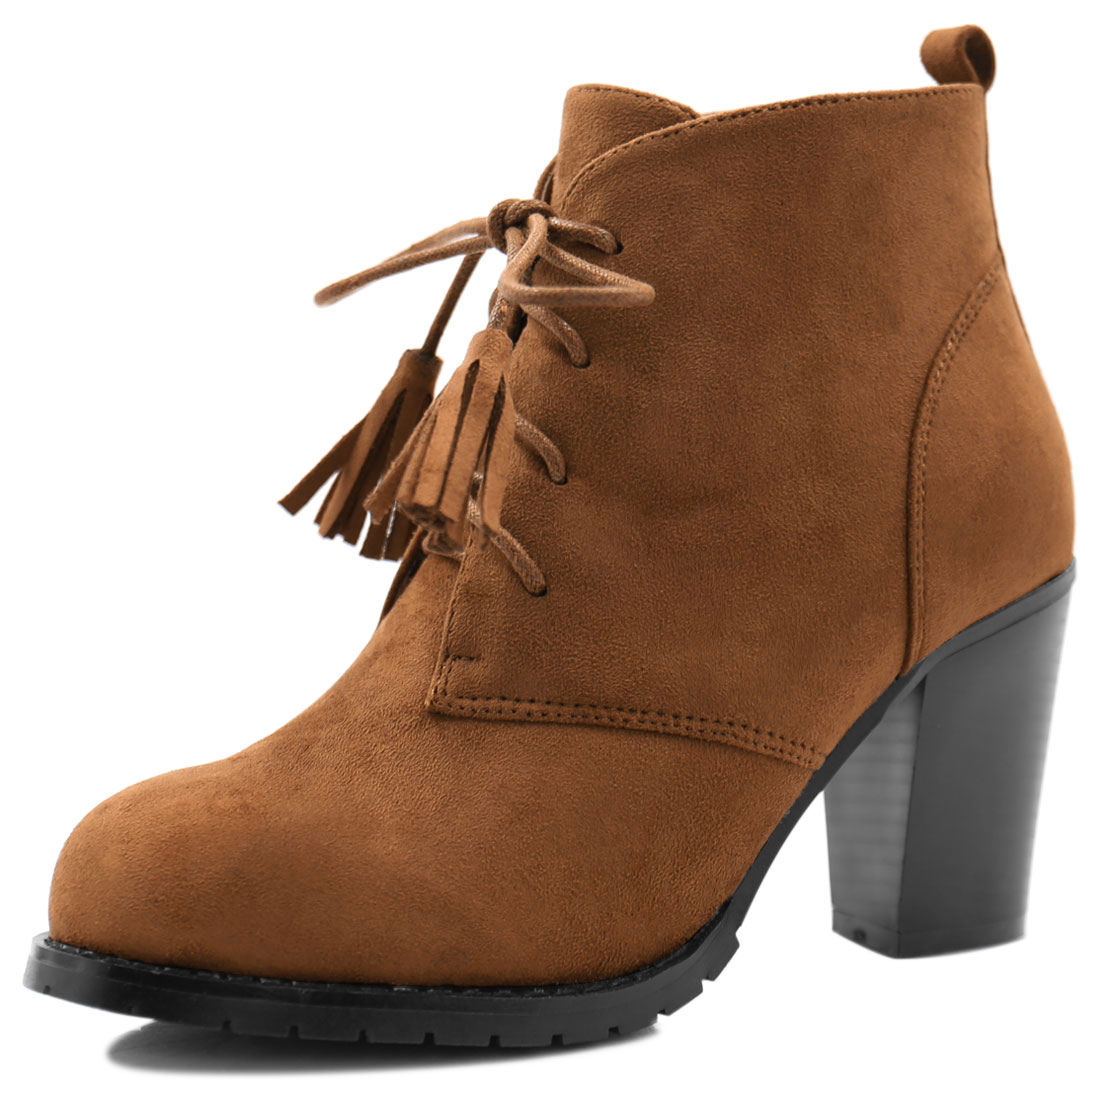 Women Rounded Toe Block Heel Tassel Lace-Up Ankle Booties Camel US 10